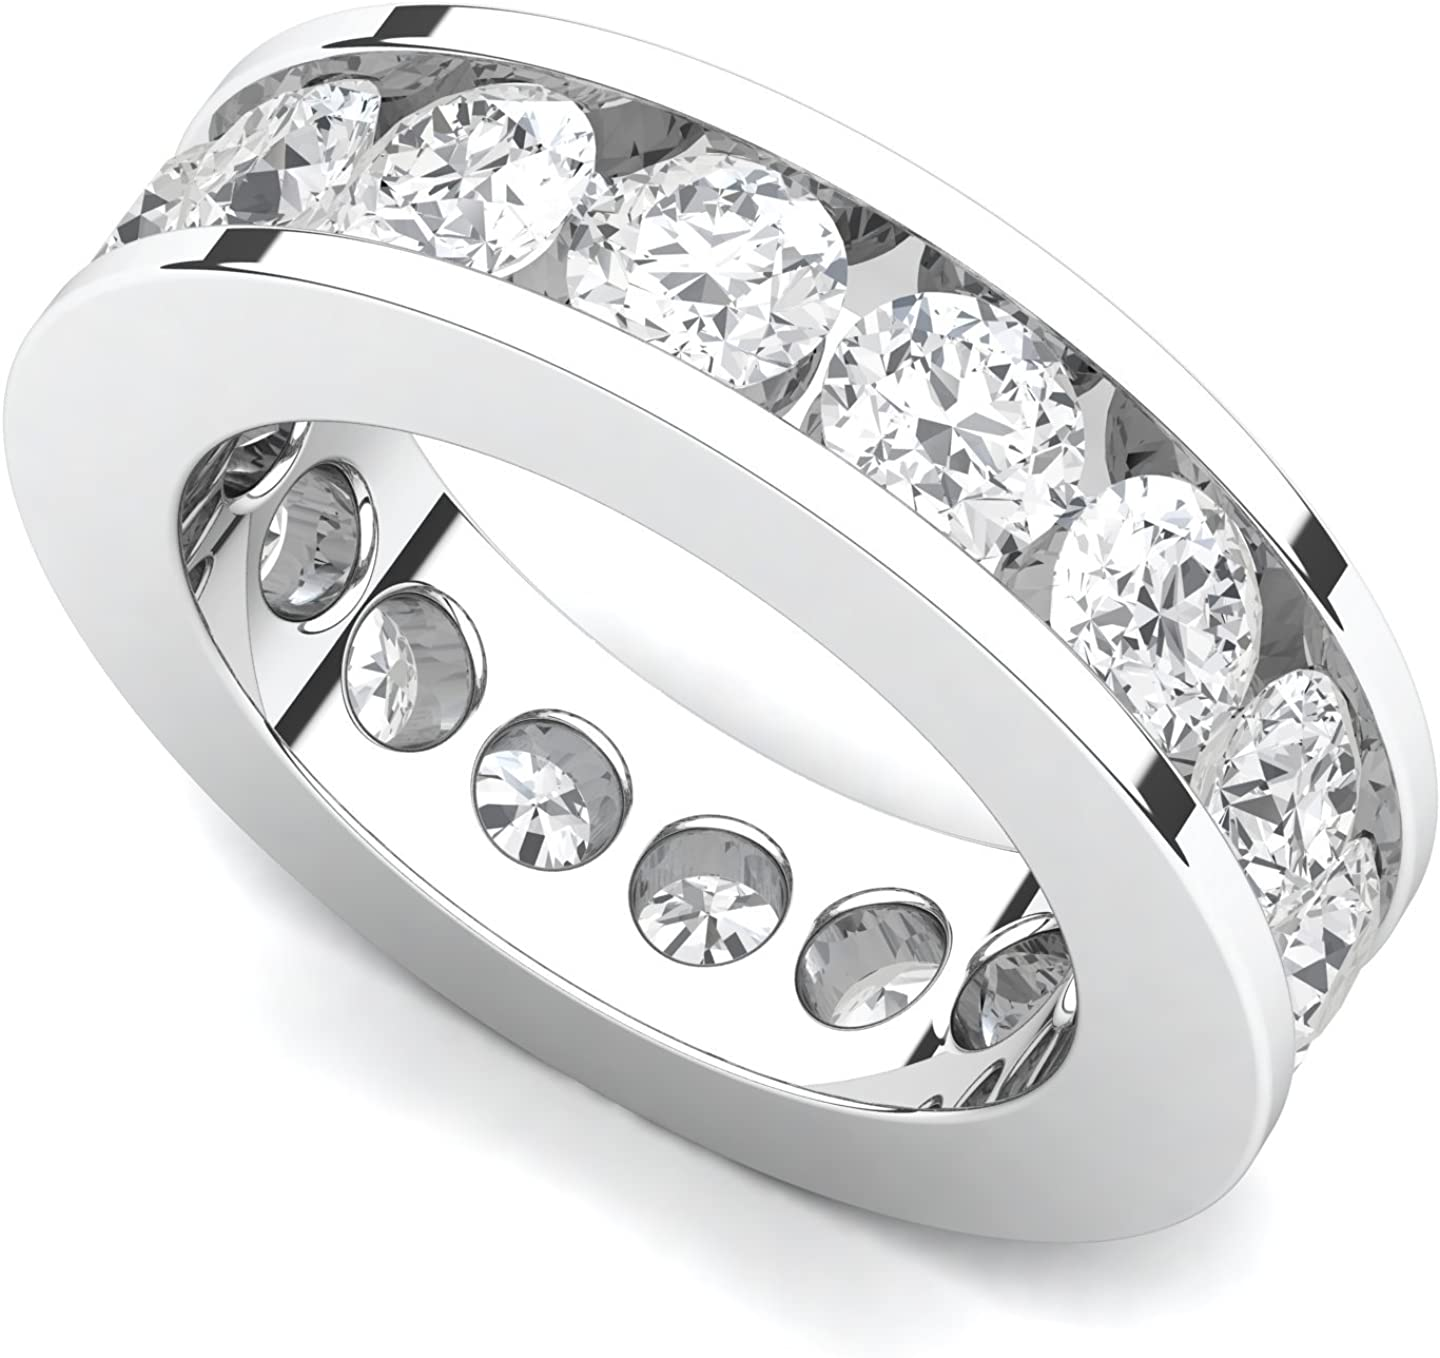 Large special price !! 18k White Gold Channel Al sold out. set Diamond G-H Ring 4 Band VS Eternity